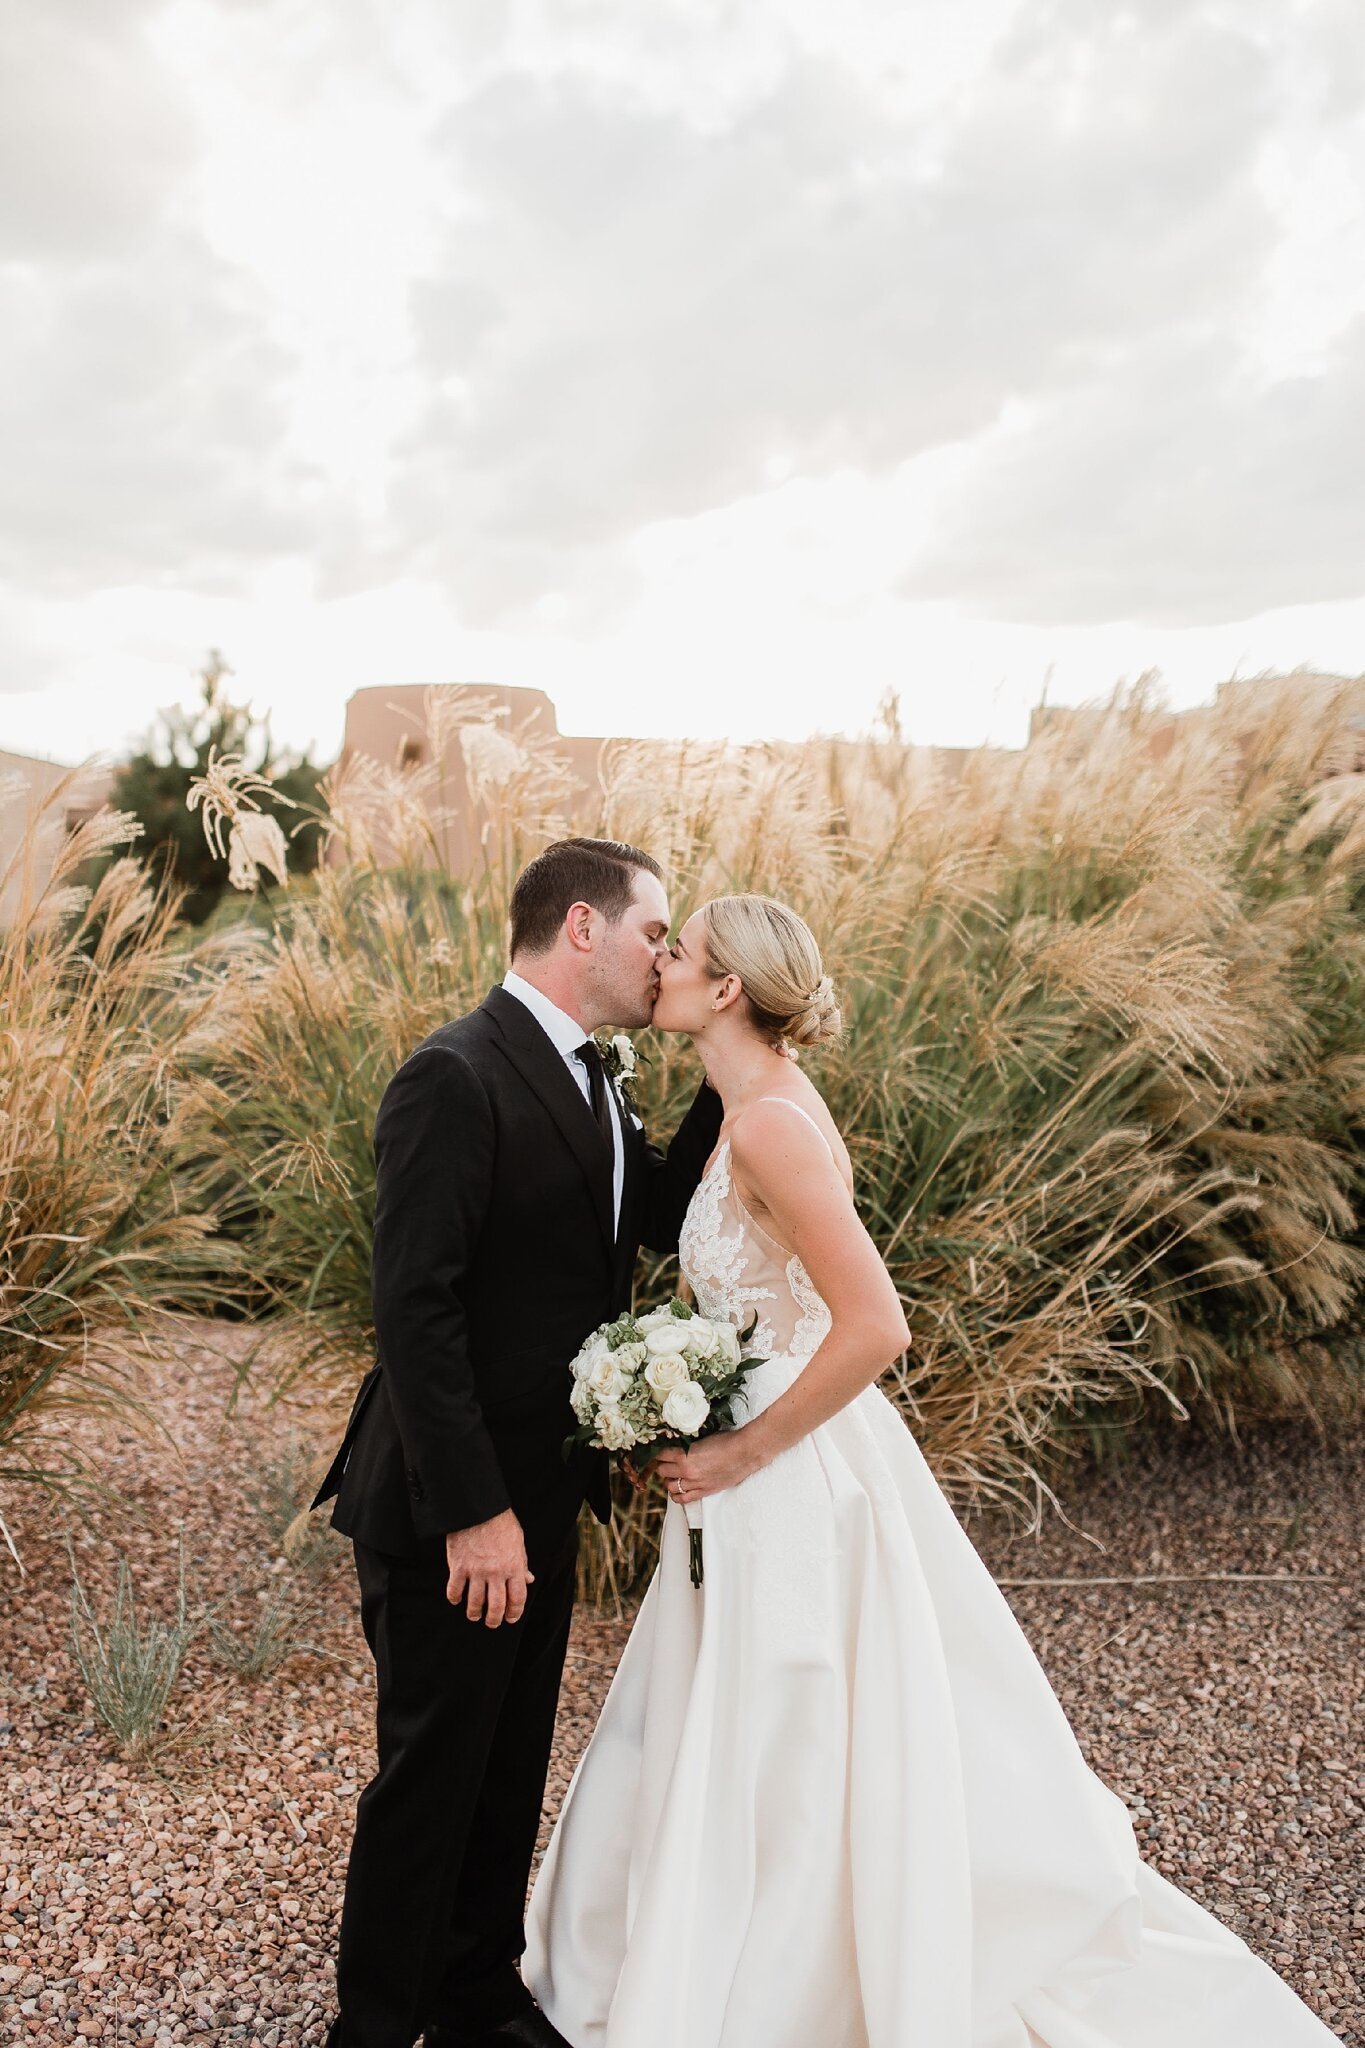 Alicia+lucia+photography+-+albuquerque+wedding+photographer+-+santa+fe+wedding+photography+-+new+mexico+wedding+photographer+-+new+mexico+wedding+-+wedding+-+bridal+gown+-+wedding+gown+-+ballgown+wedding+gown+-+ballgown+bridal+gown_0049.jpg